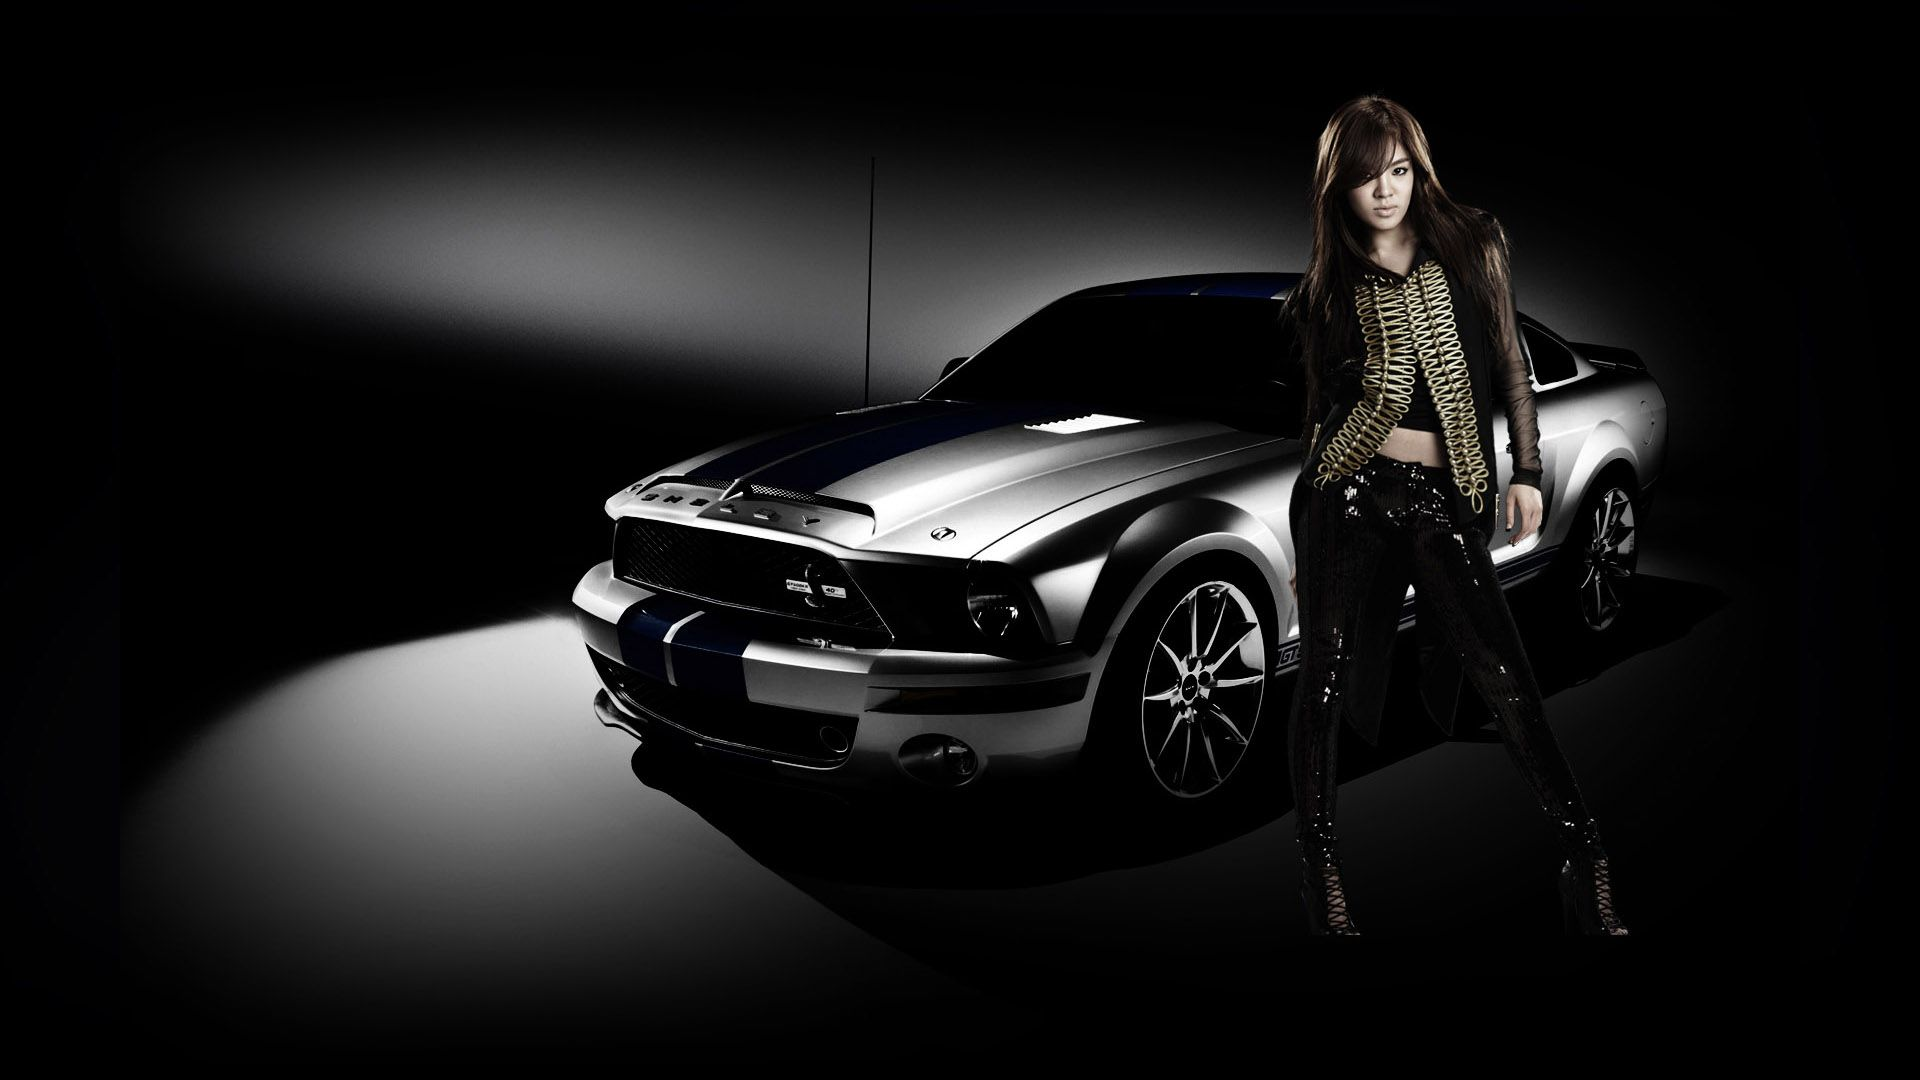 Car And Black Dress Girl Wallpapers Car And Girl Wallpaper Mustang Car Wallpapers Cool cars with girls wallpaper free hd